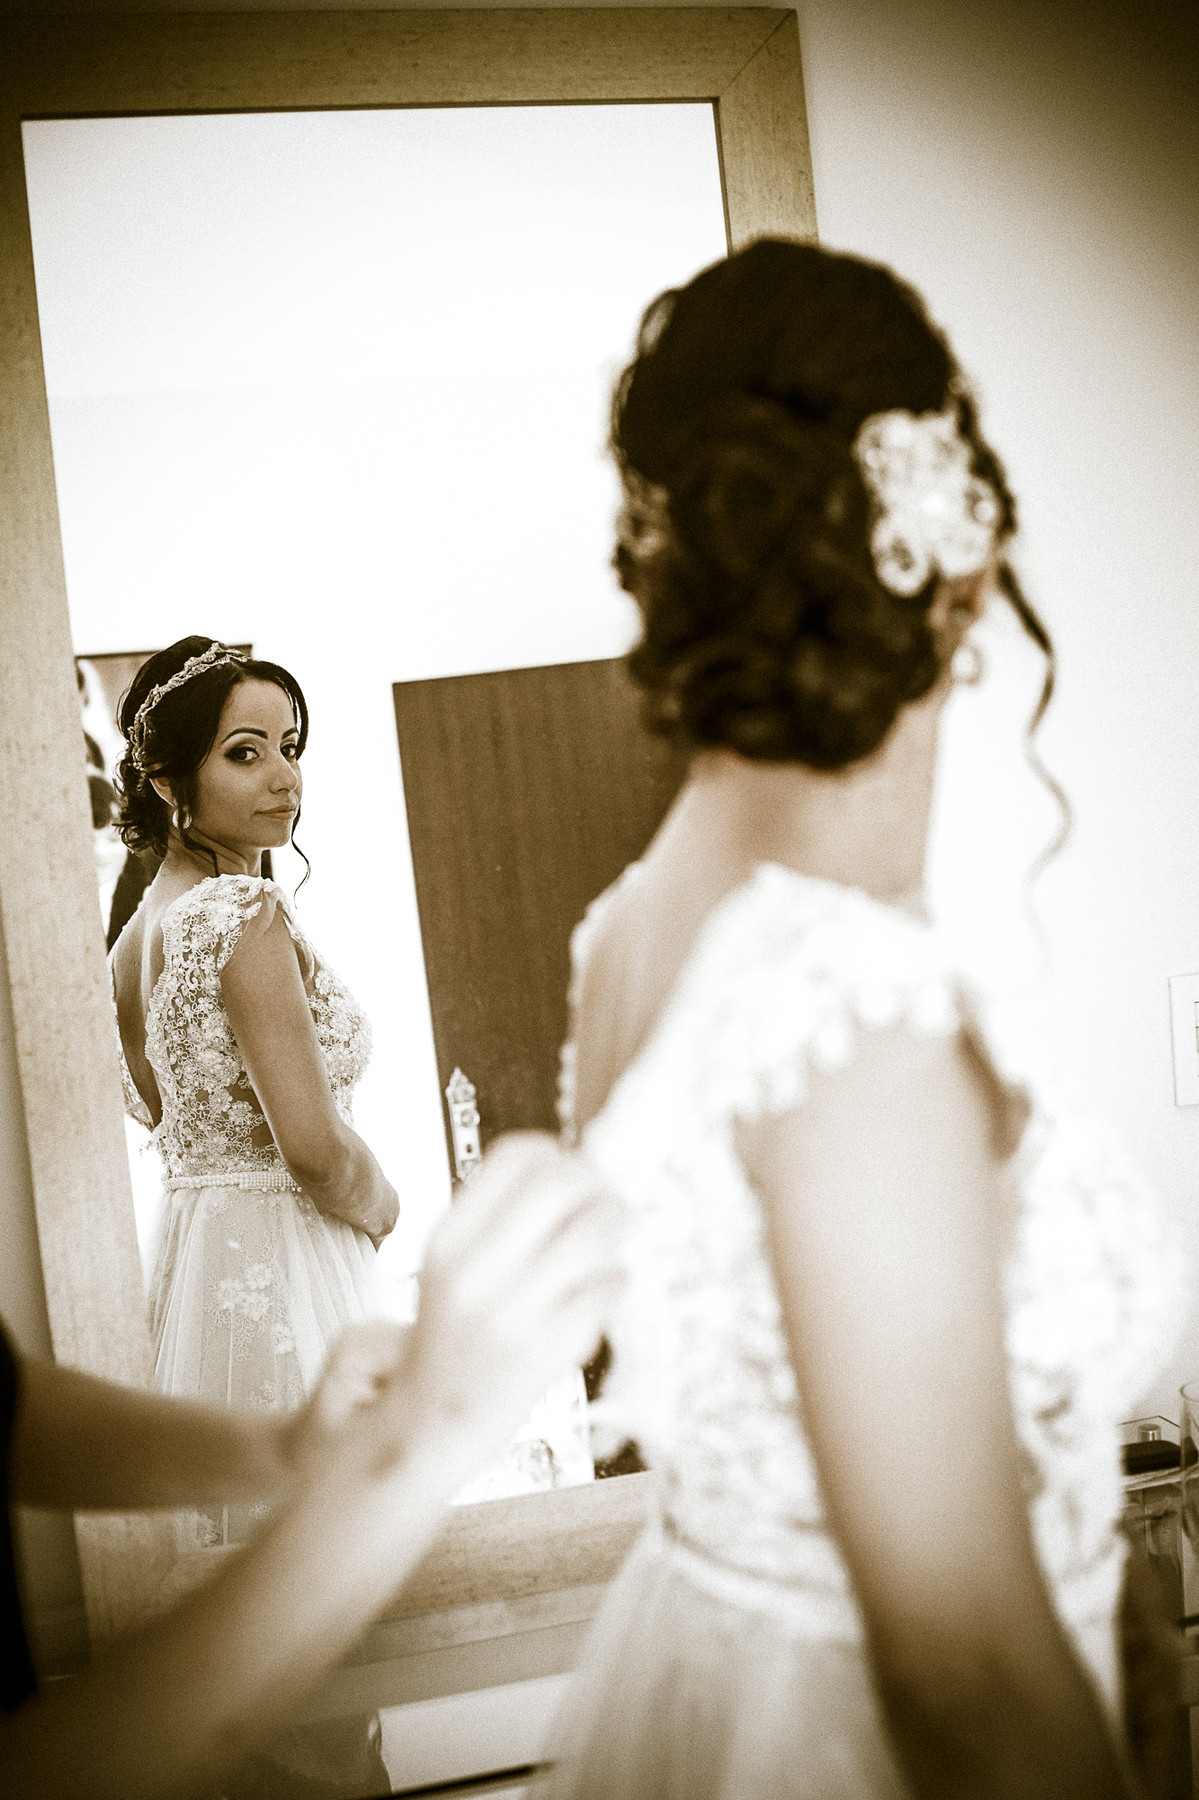 wedding photographerRondinei borges